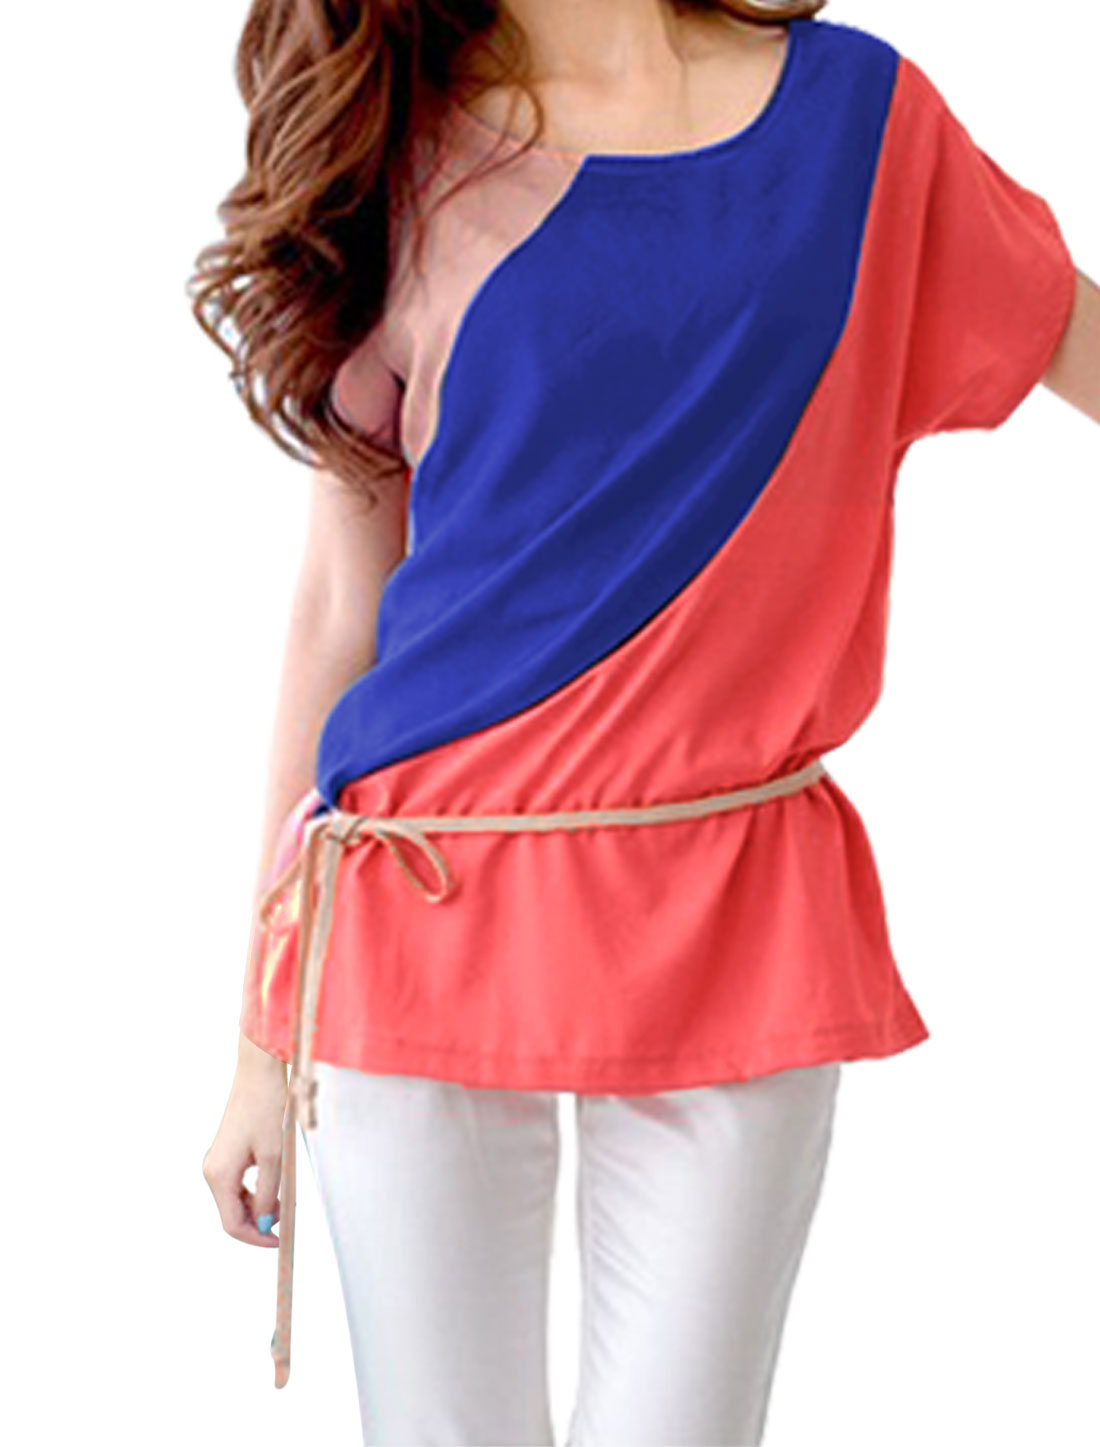 Lady Scoop Neck Short Dolman Sleeve Watermelon Red Blue Blouse L